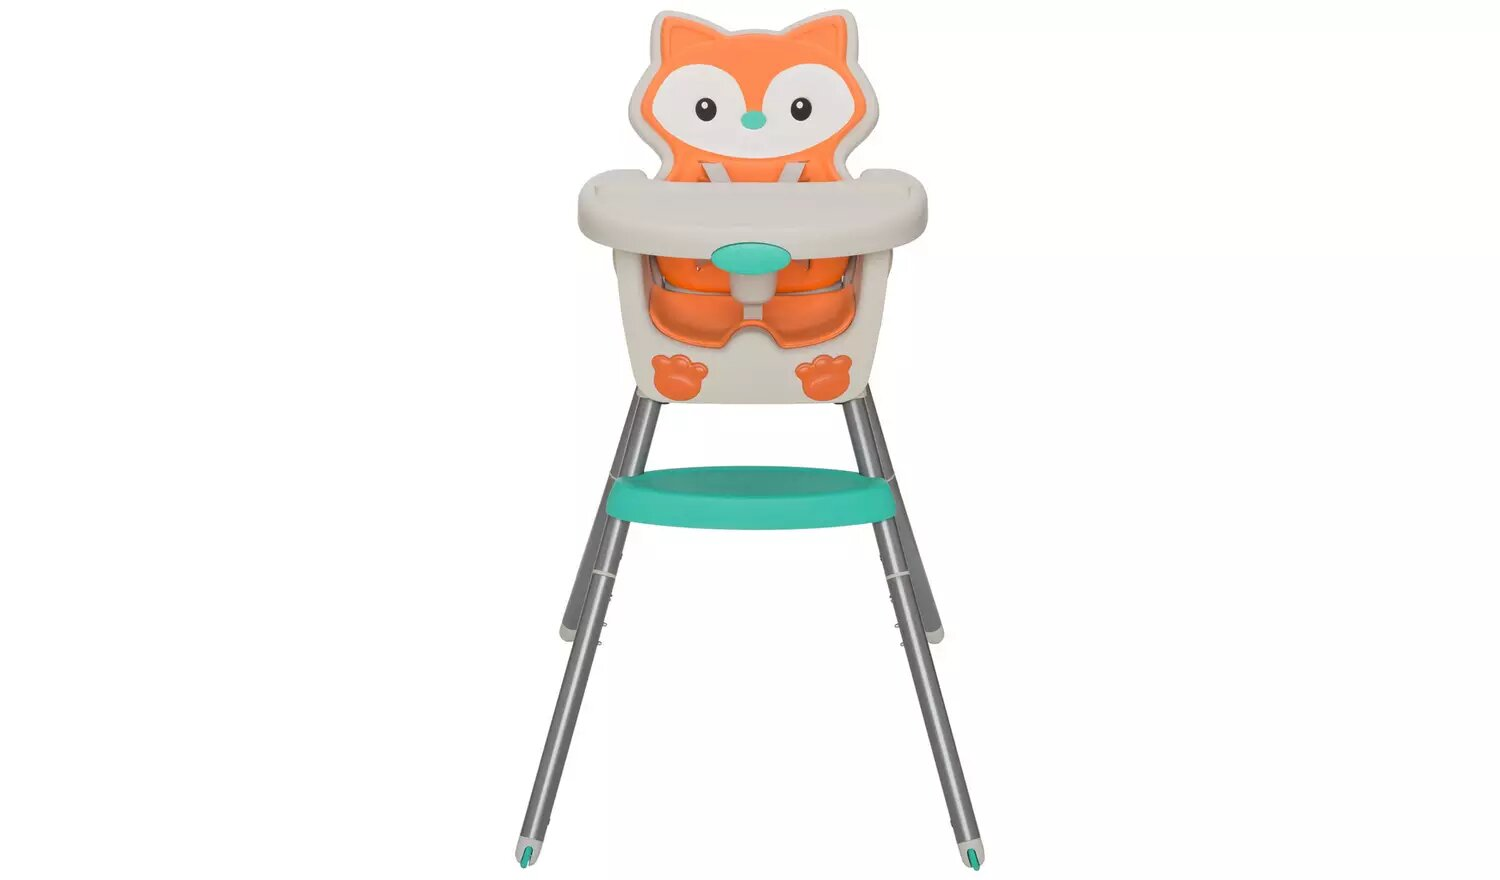 Infantino Fox Grow With Me 4-In-1 Convertible Highchair.